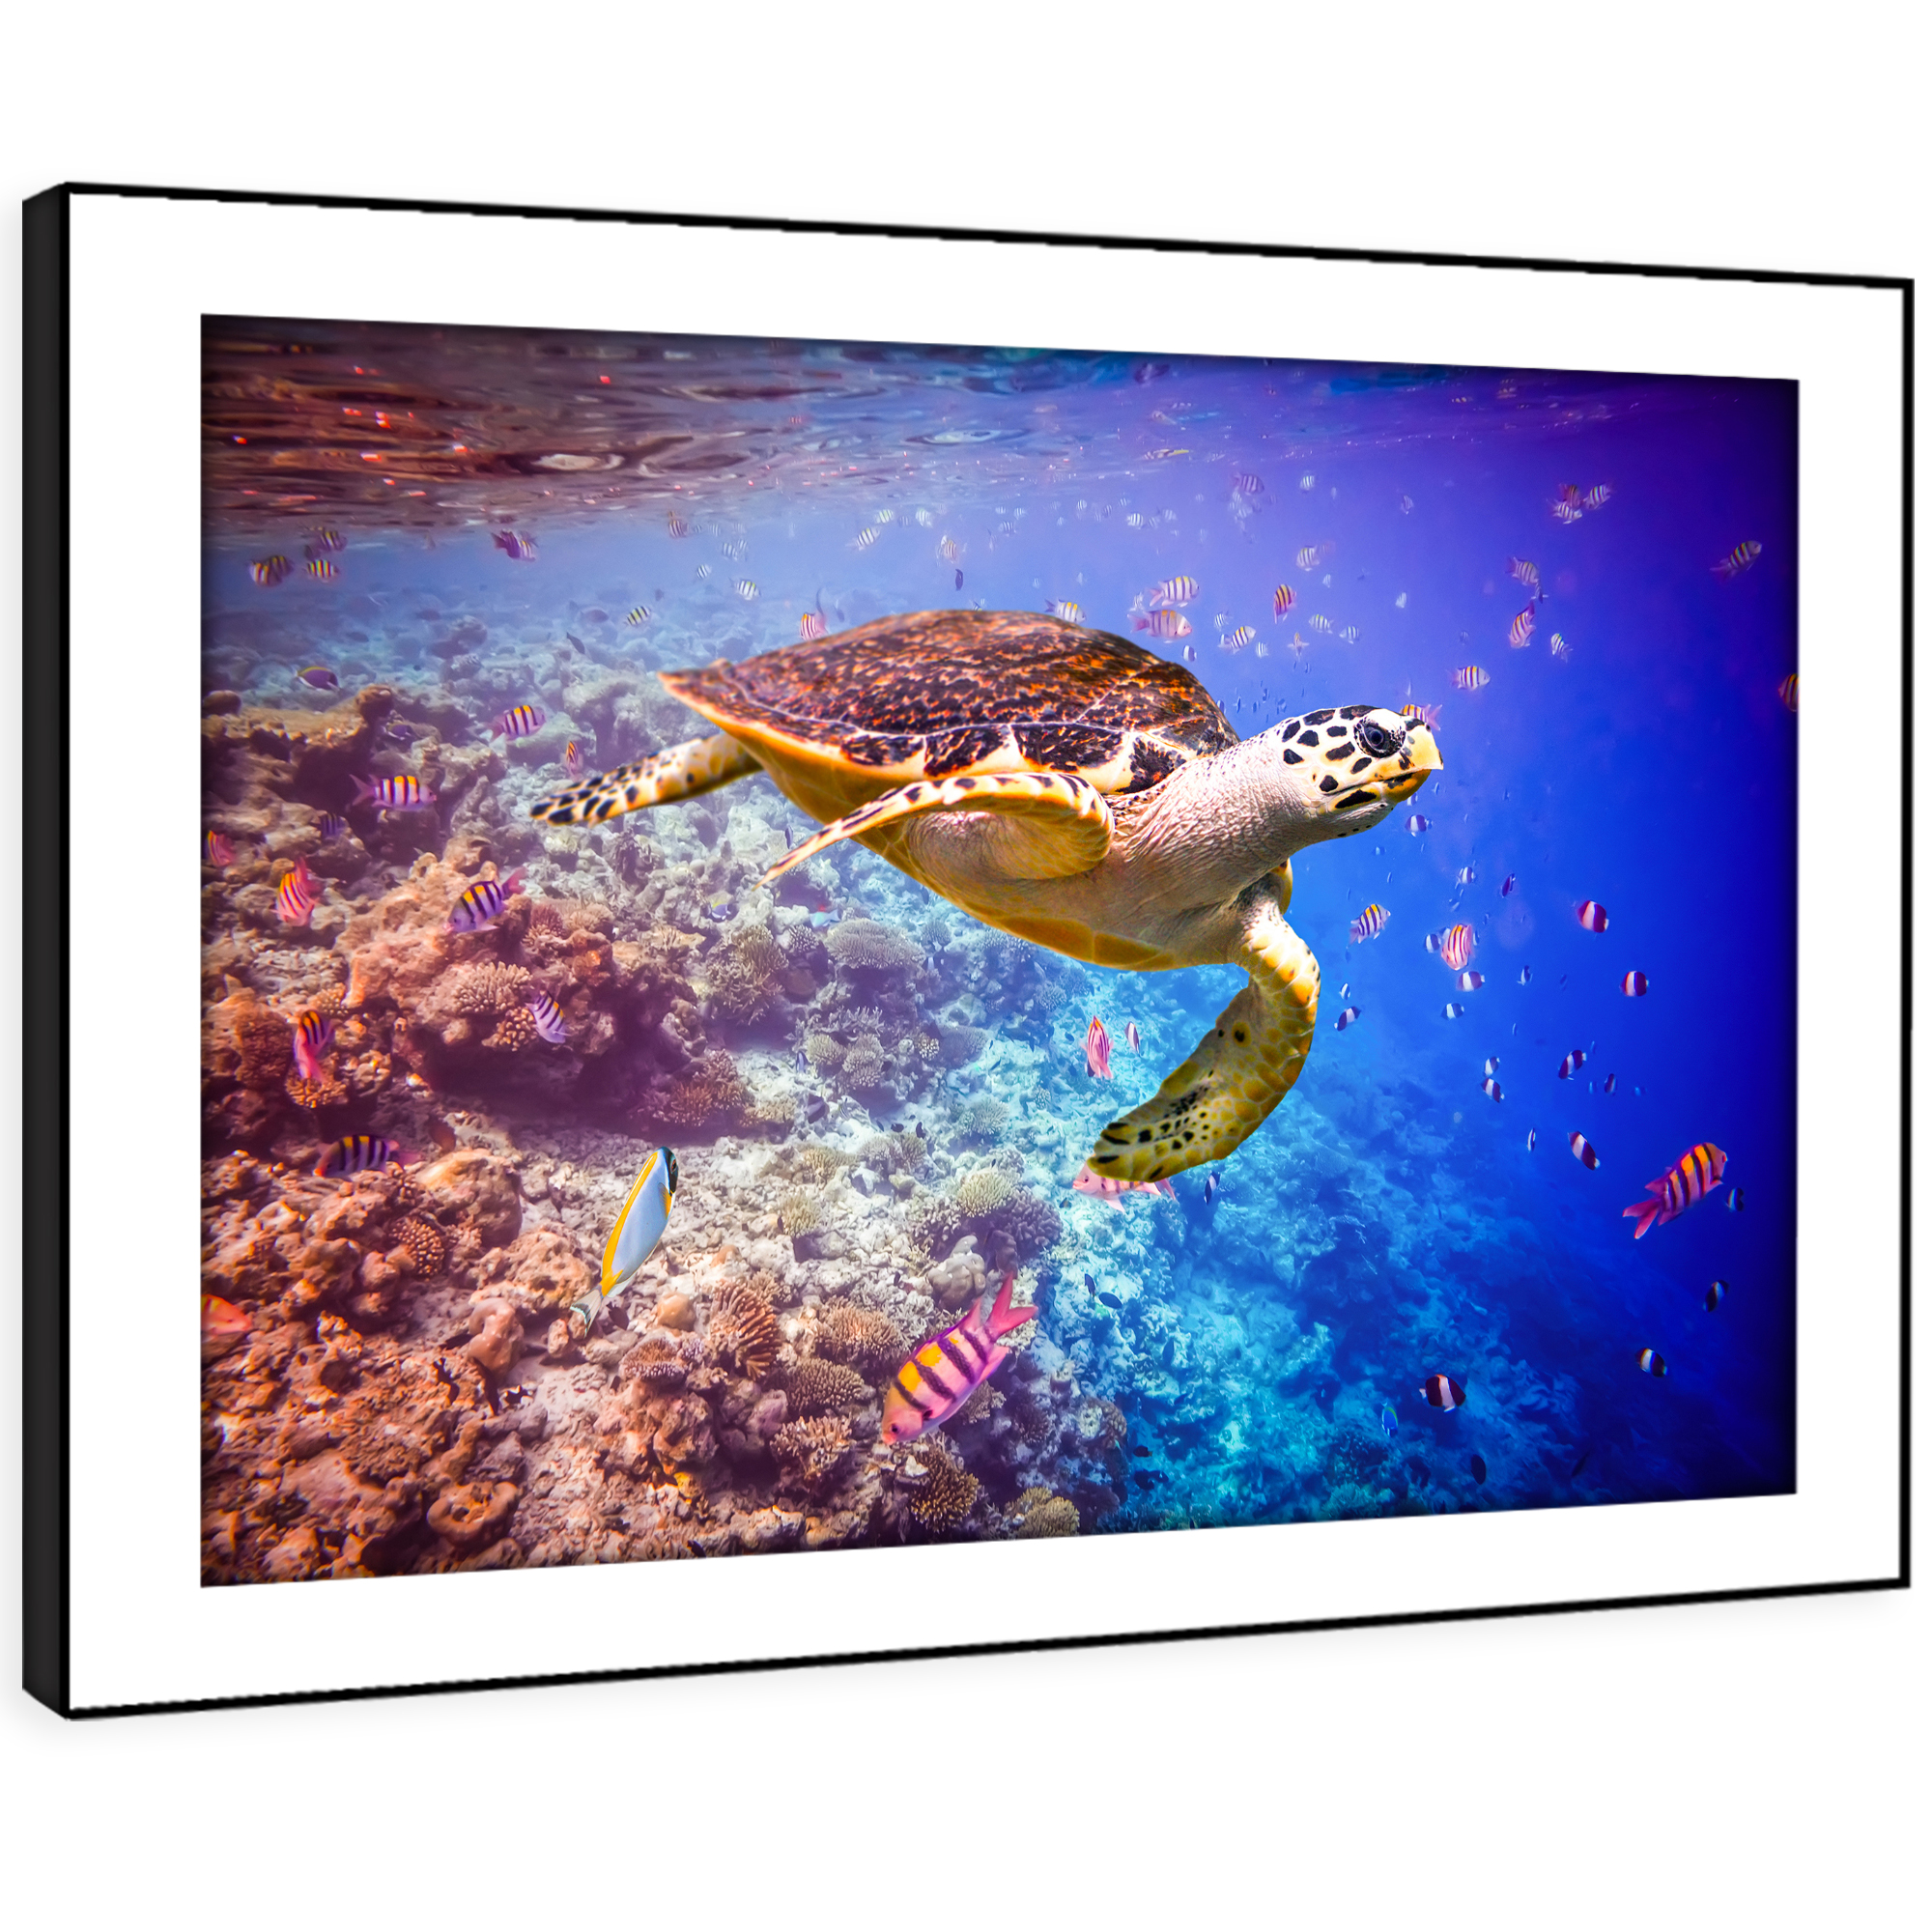 A445 Ocean Coral Reef  Turtle Funky Animal Framed Wall Art Large Picture Prints